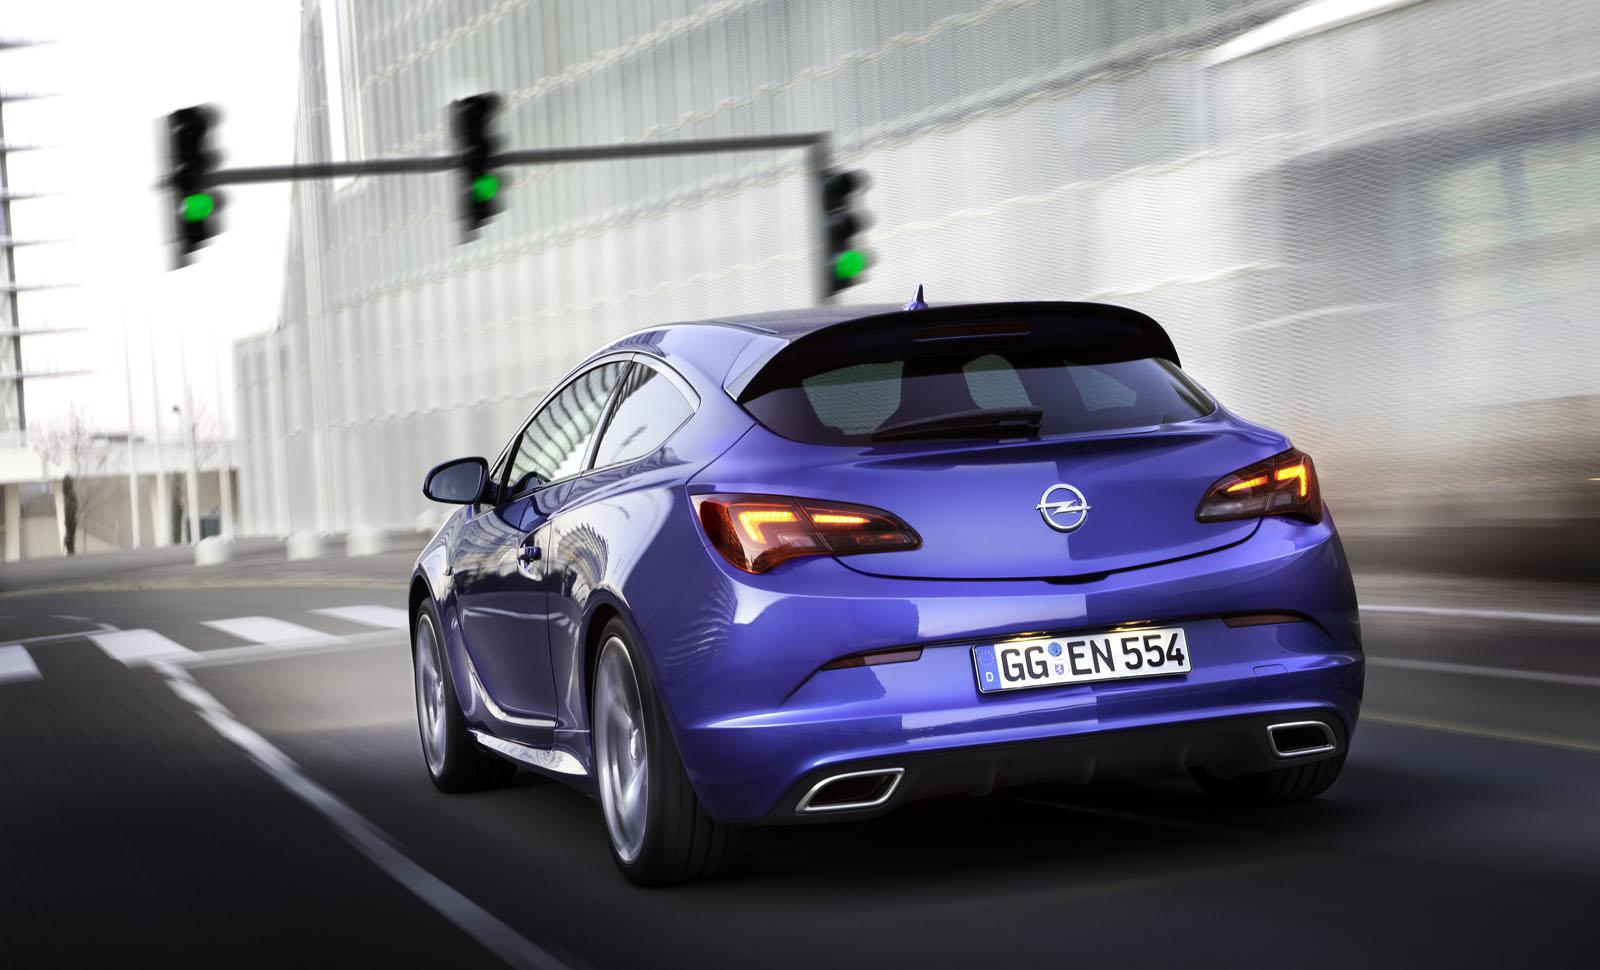 Race Car Wallpapers High Resolution Opel Astra J Opc 280hp And 400nm Hd Video